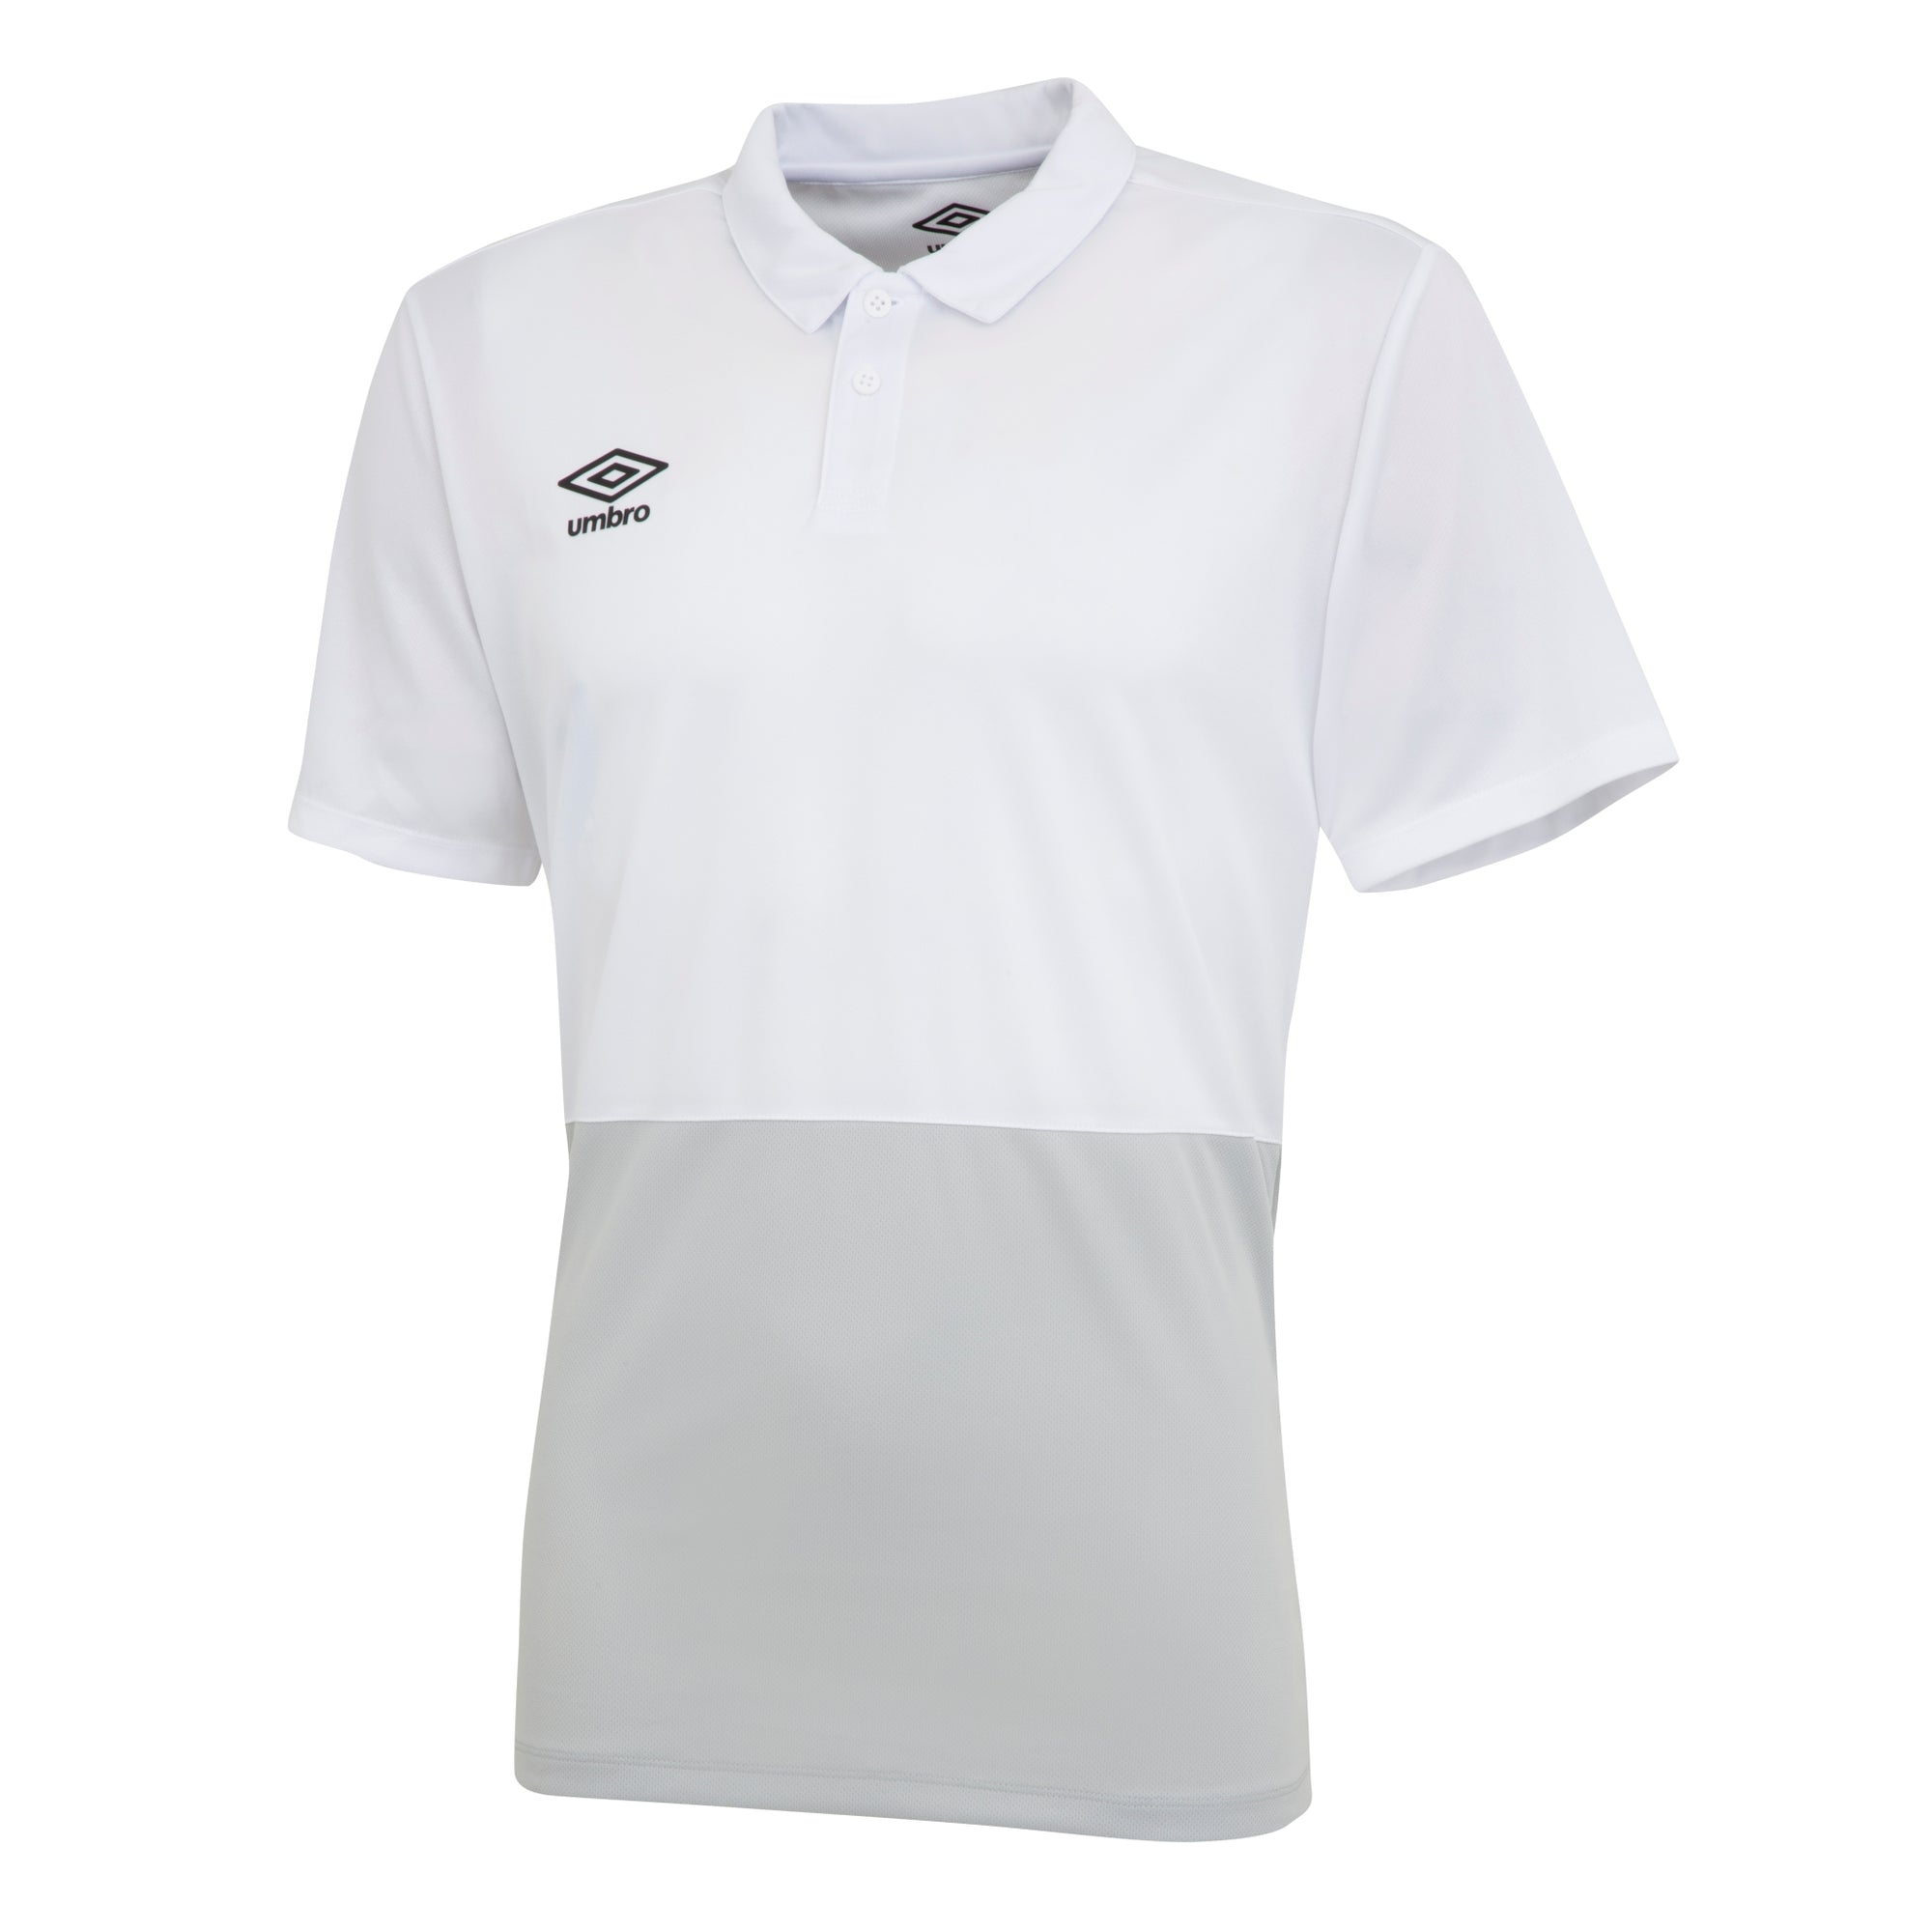 Umbro Poly Polo - White/High Rise/Carbon